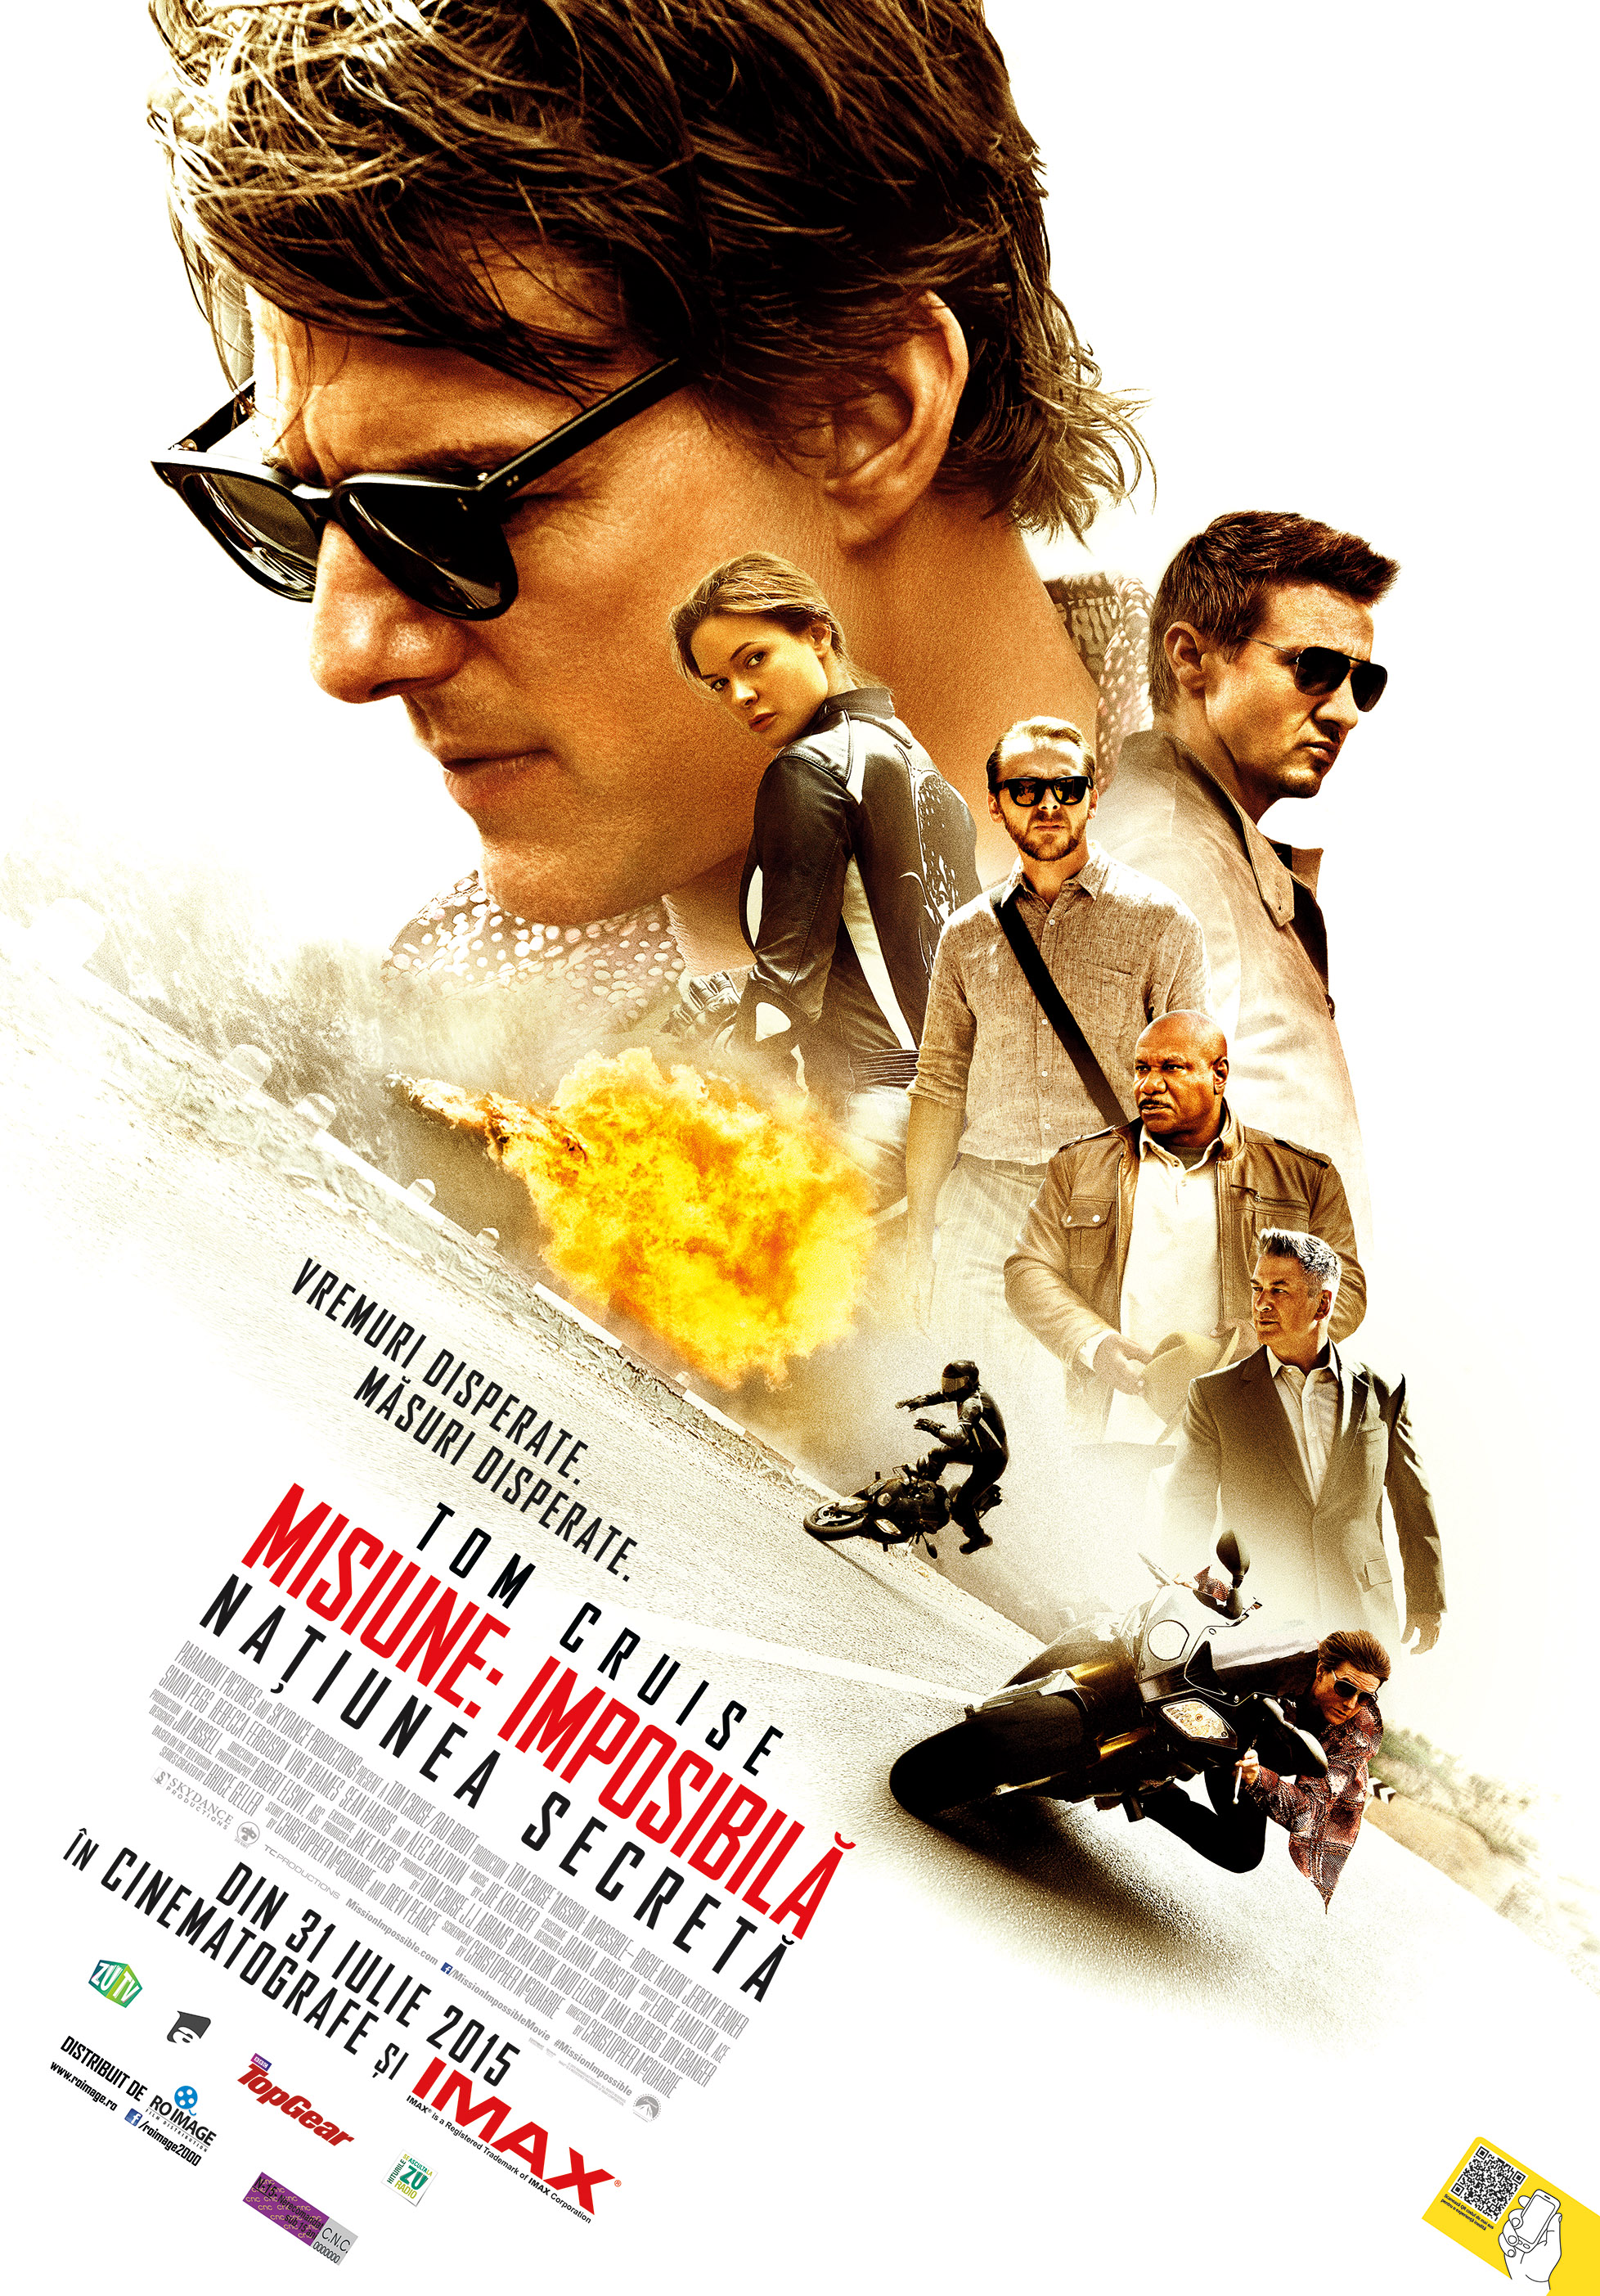 Misiune: Imposibila – Natiunea secreta / Mission: Impossible – Rogue Nation (Premiera)